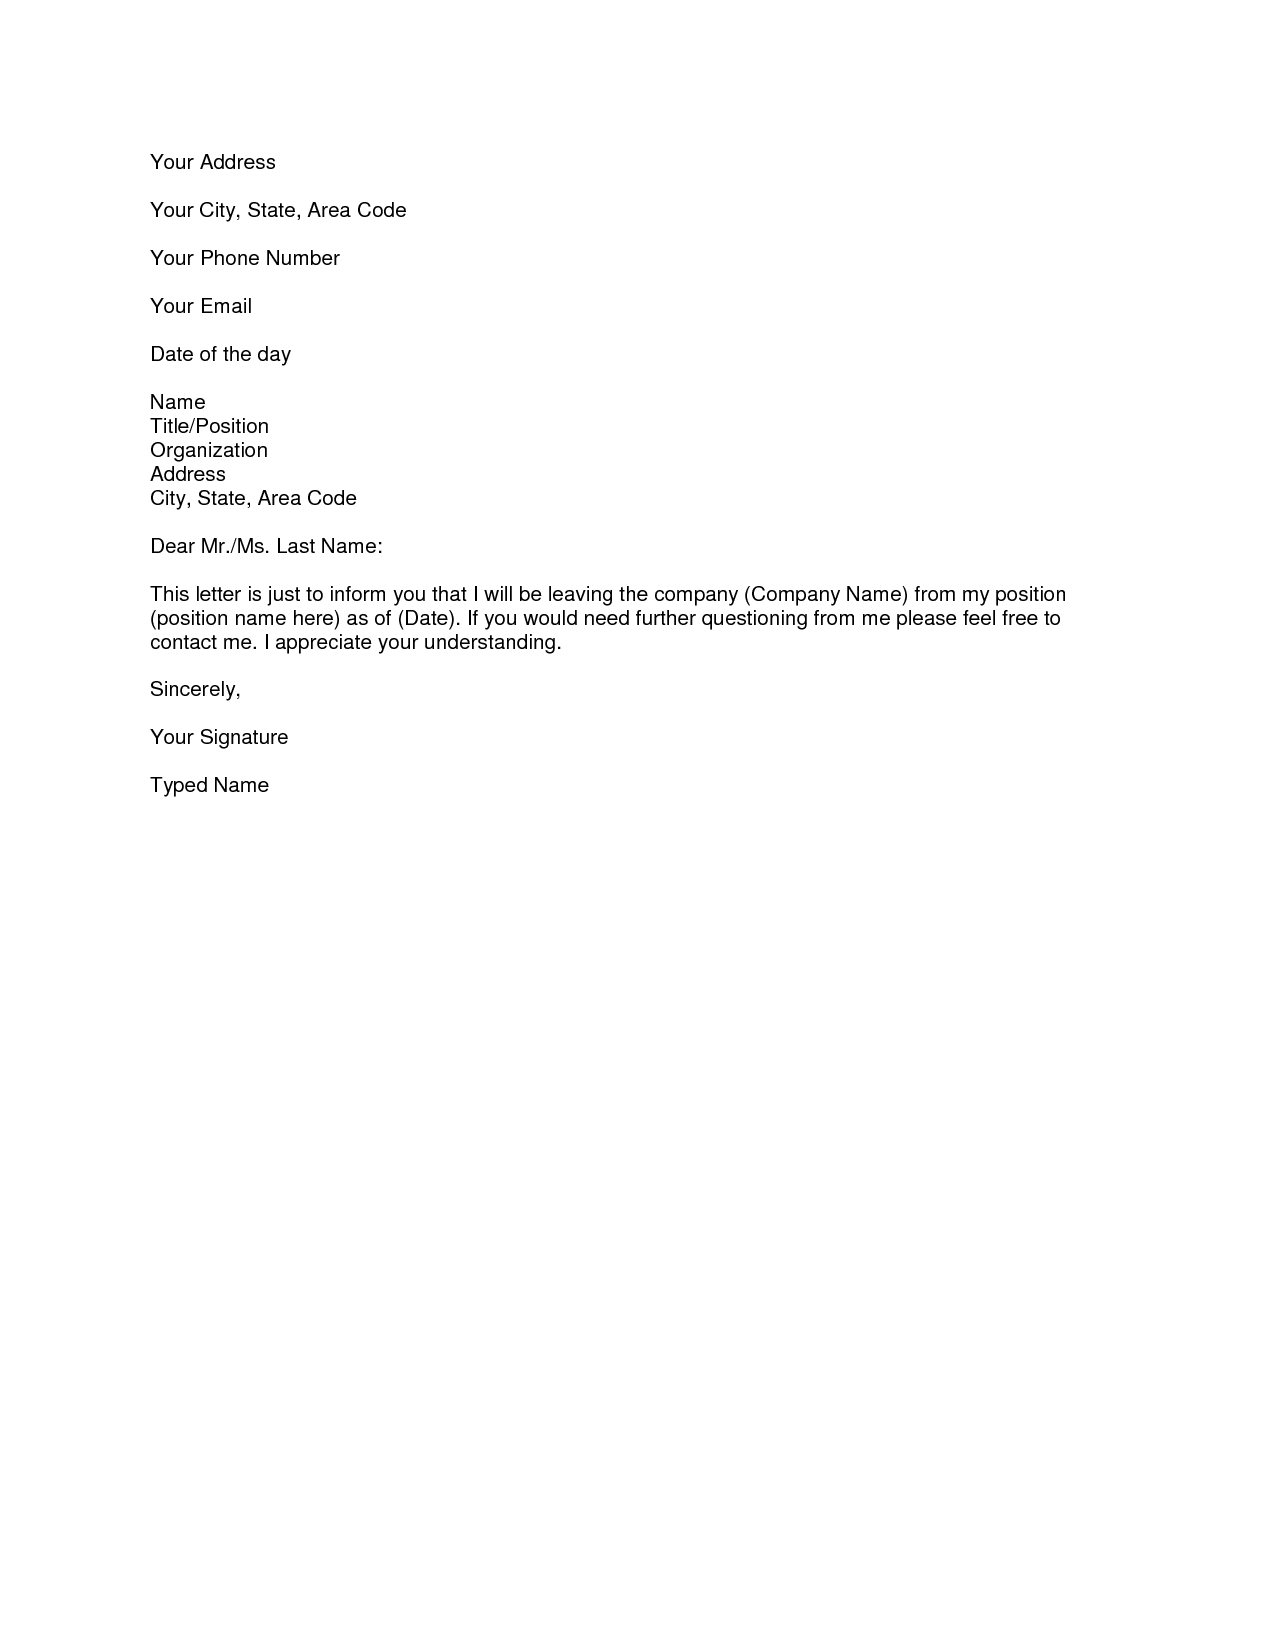 resignation ketter sample of resignation letter notice period – Letters to Resign